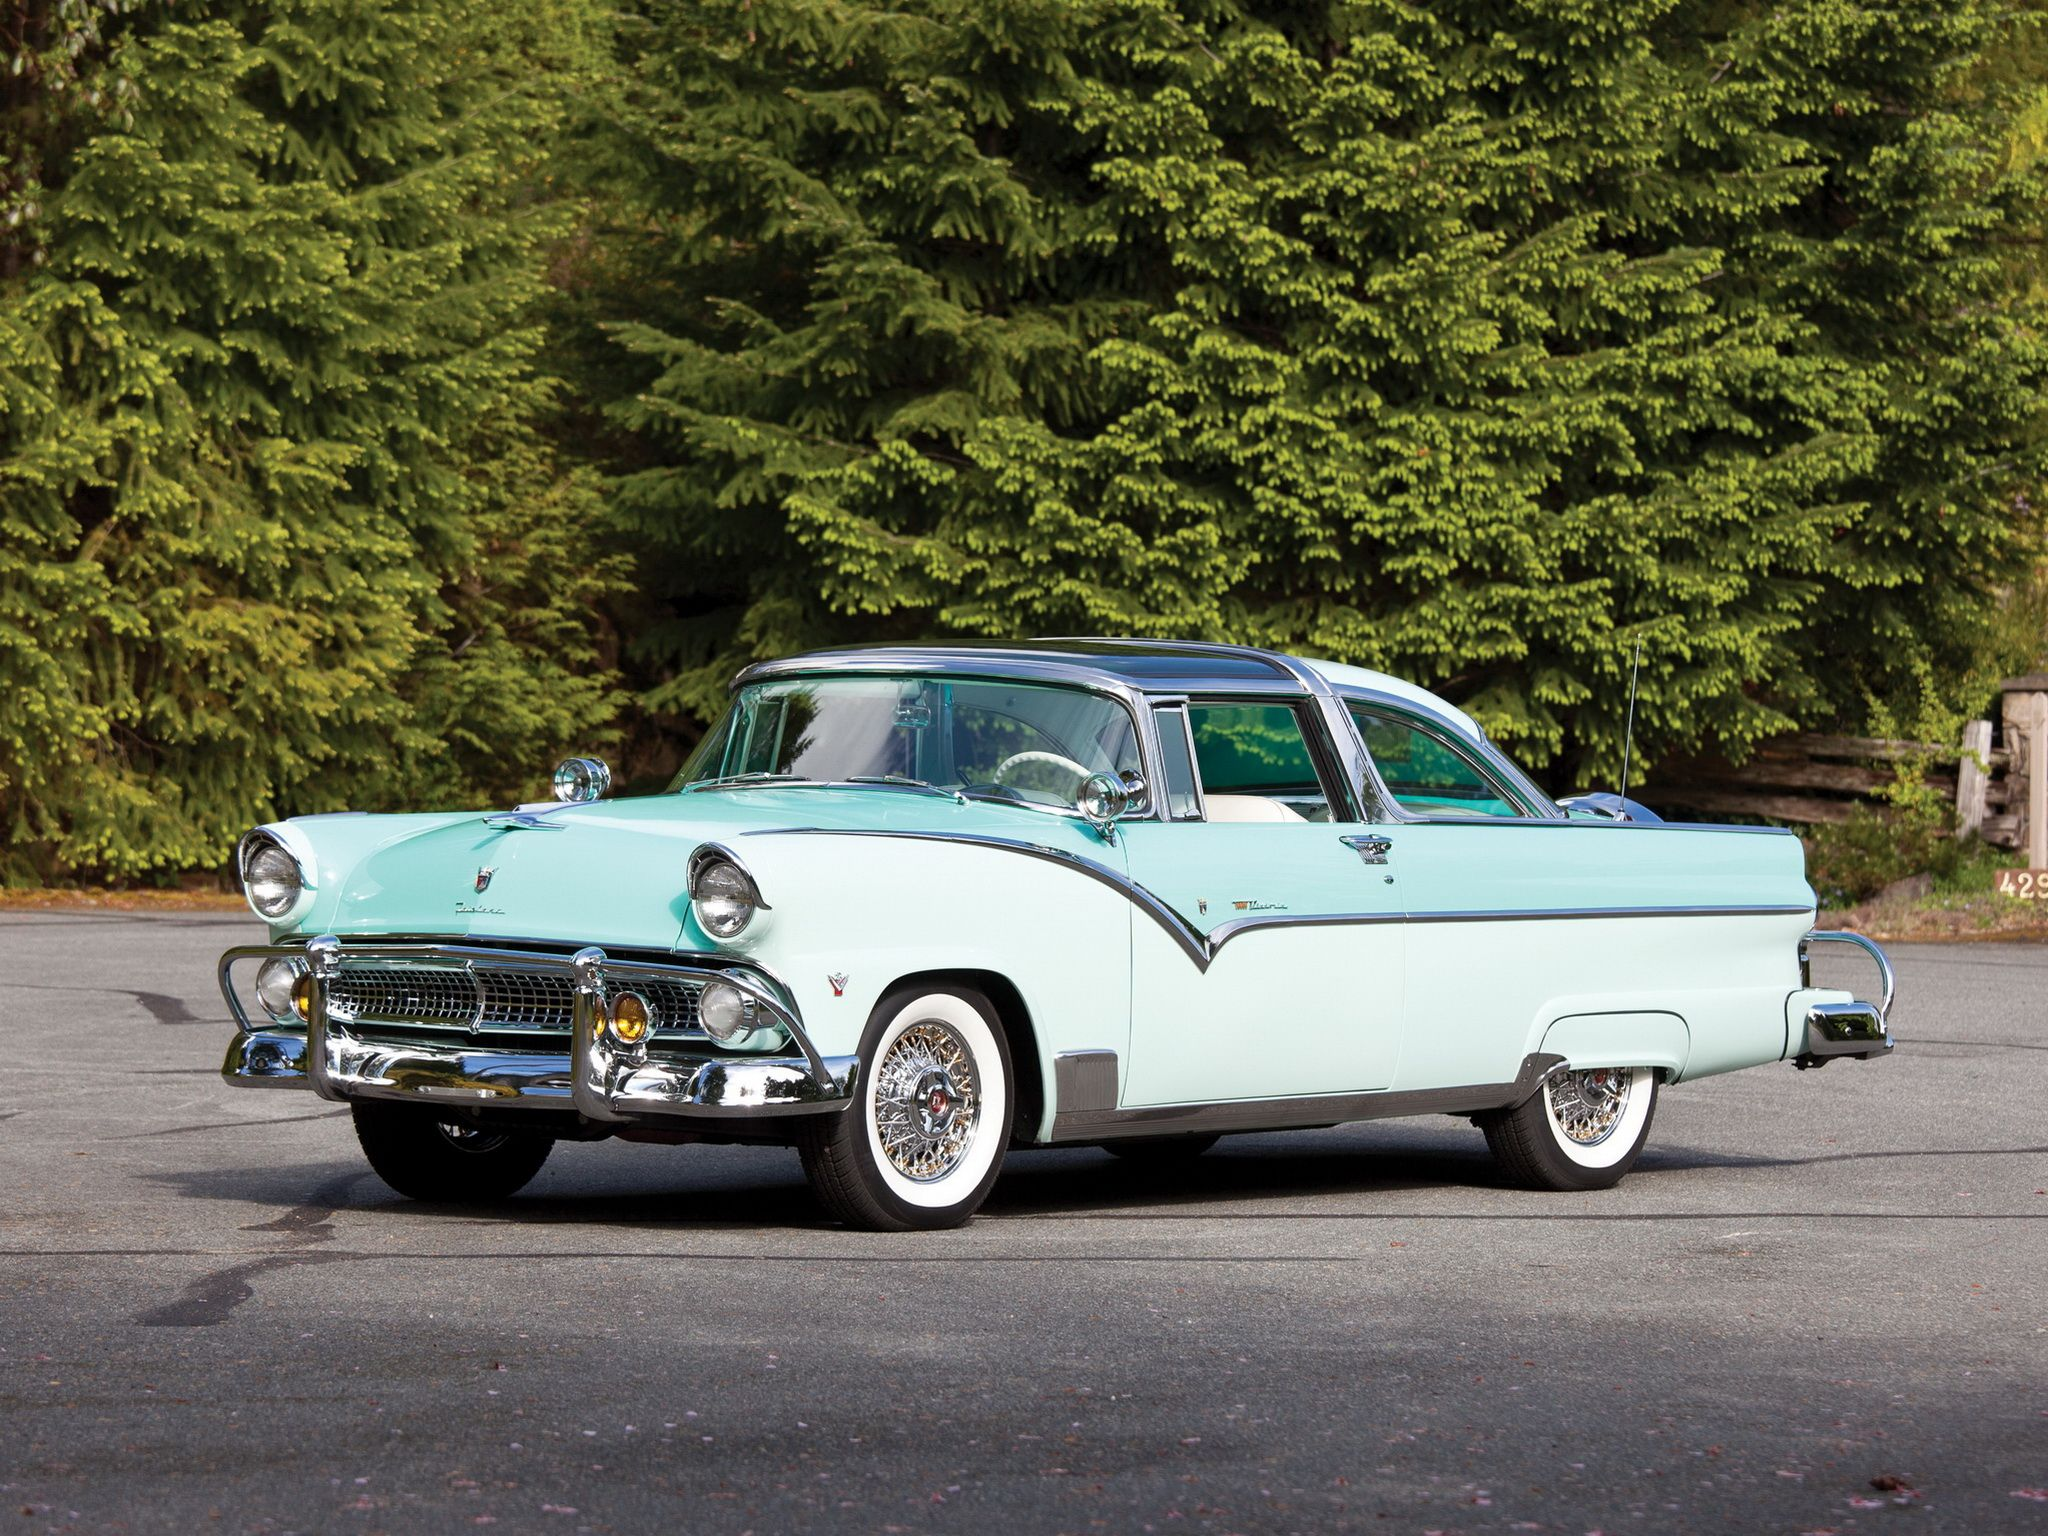 1955 ford fairlane crown victoria blog cars on line - 1955 Ford Fairlane Crown Victoria Skyliner